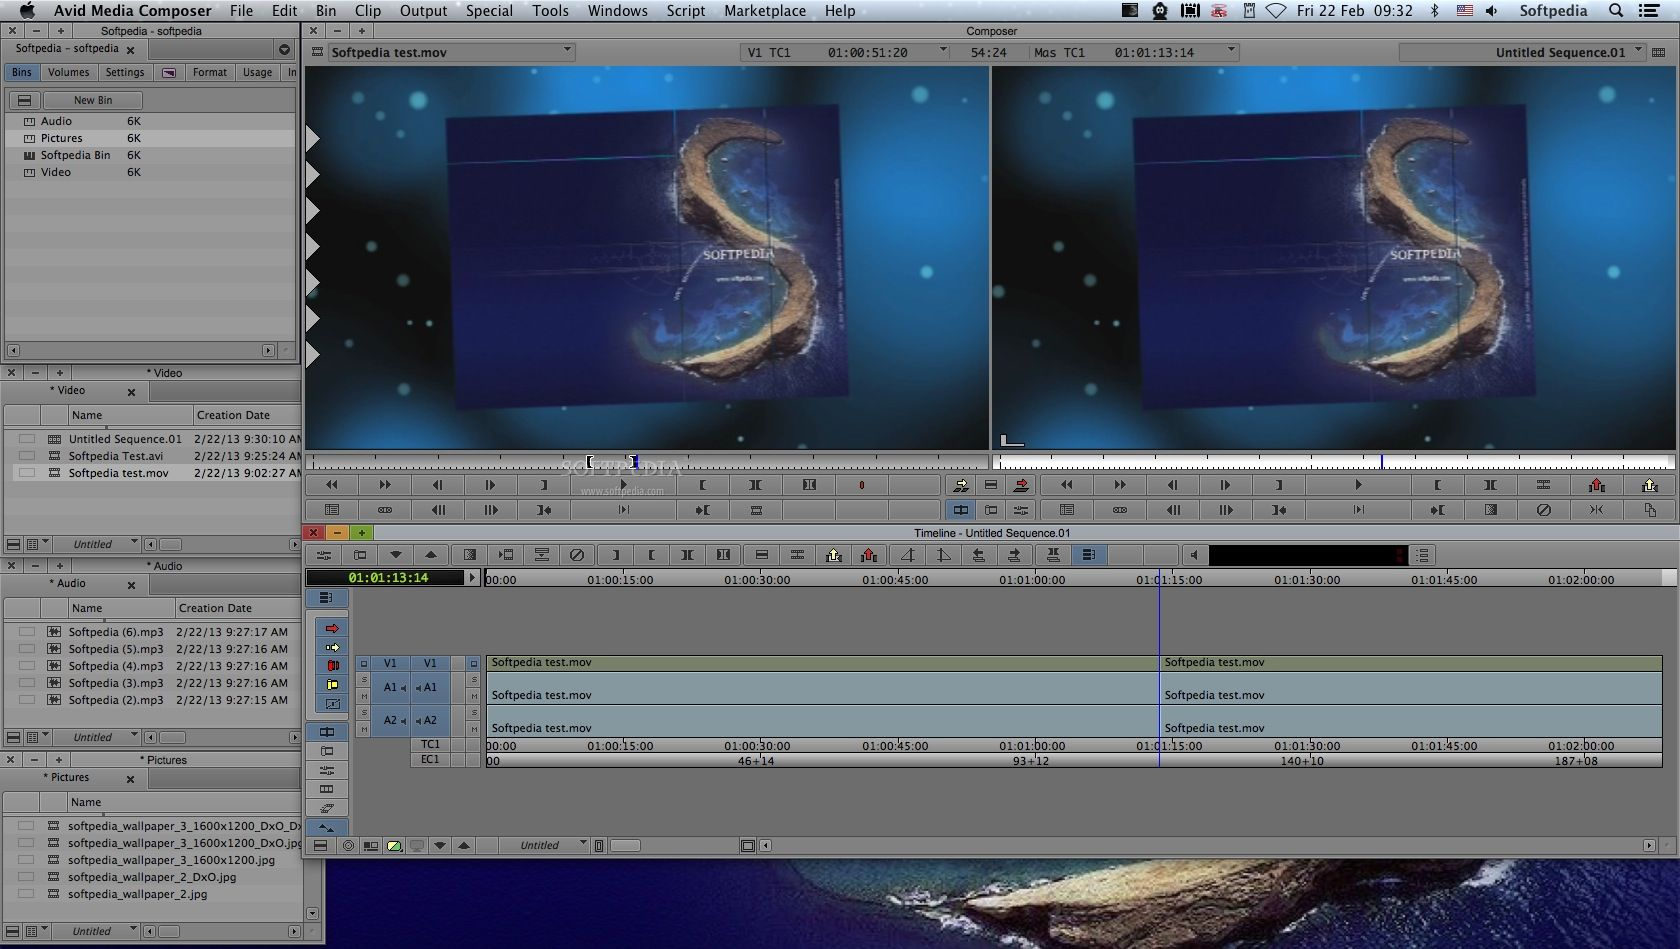 Media Composer screenshot 1 - From Media Composer's main window you can view, edit and modify video, audio and image files from your bins.